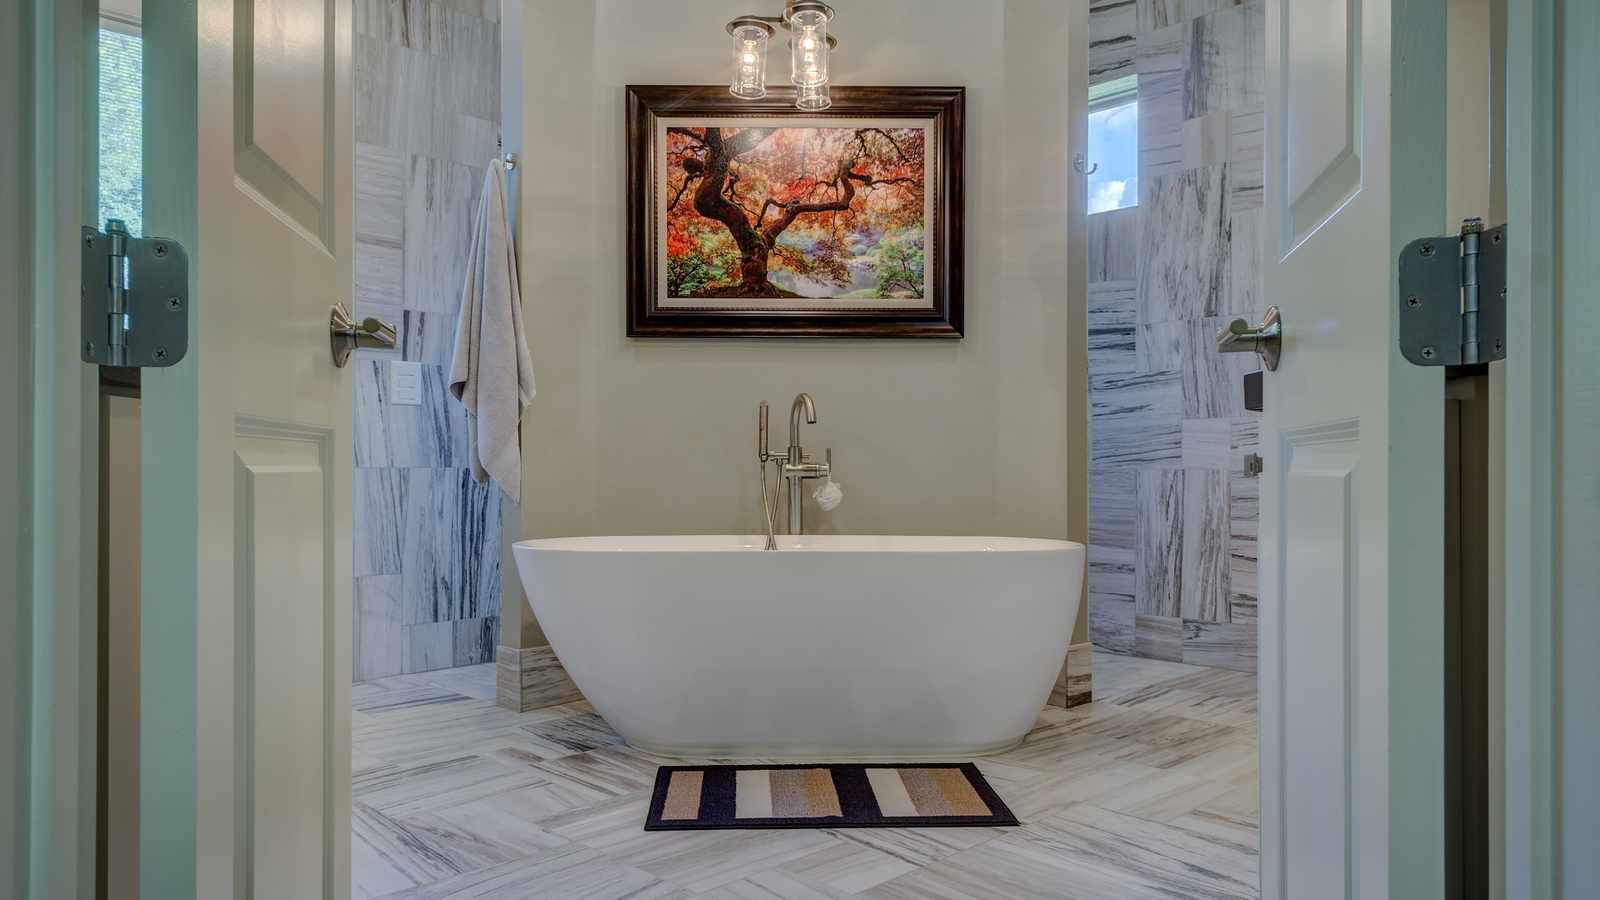 Affordable fixes that will transform your rental bathroom